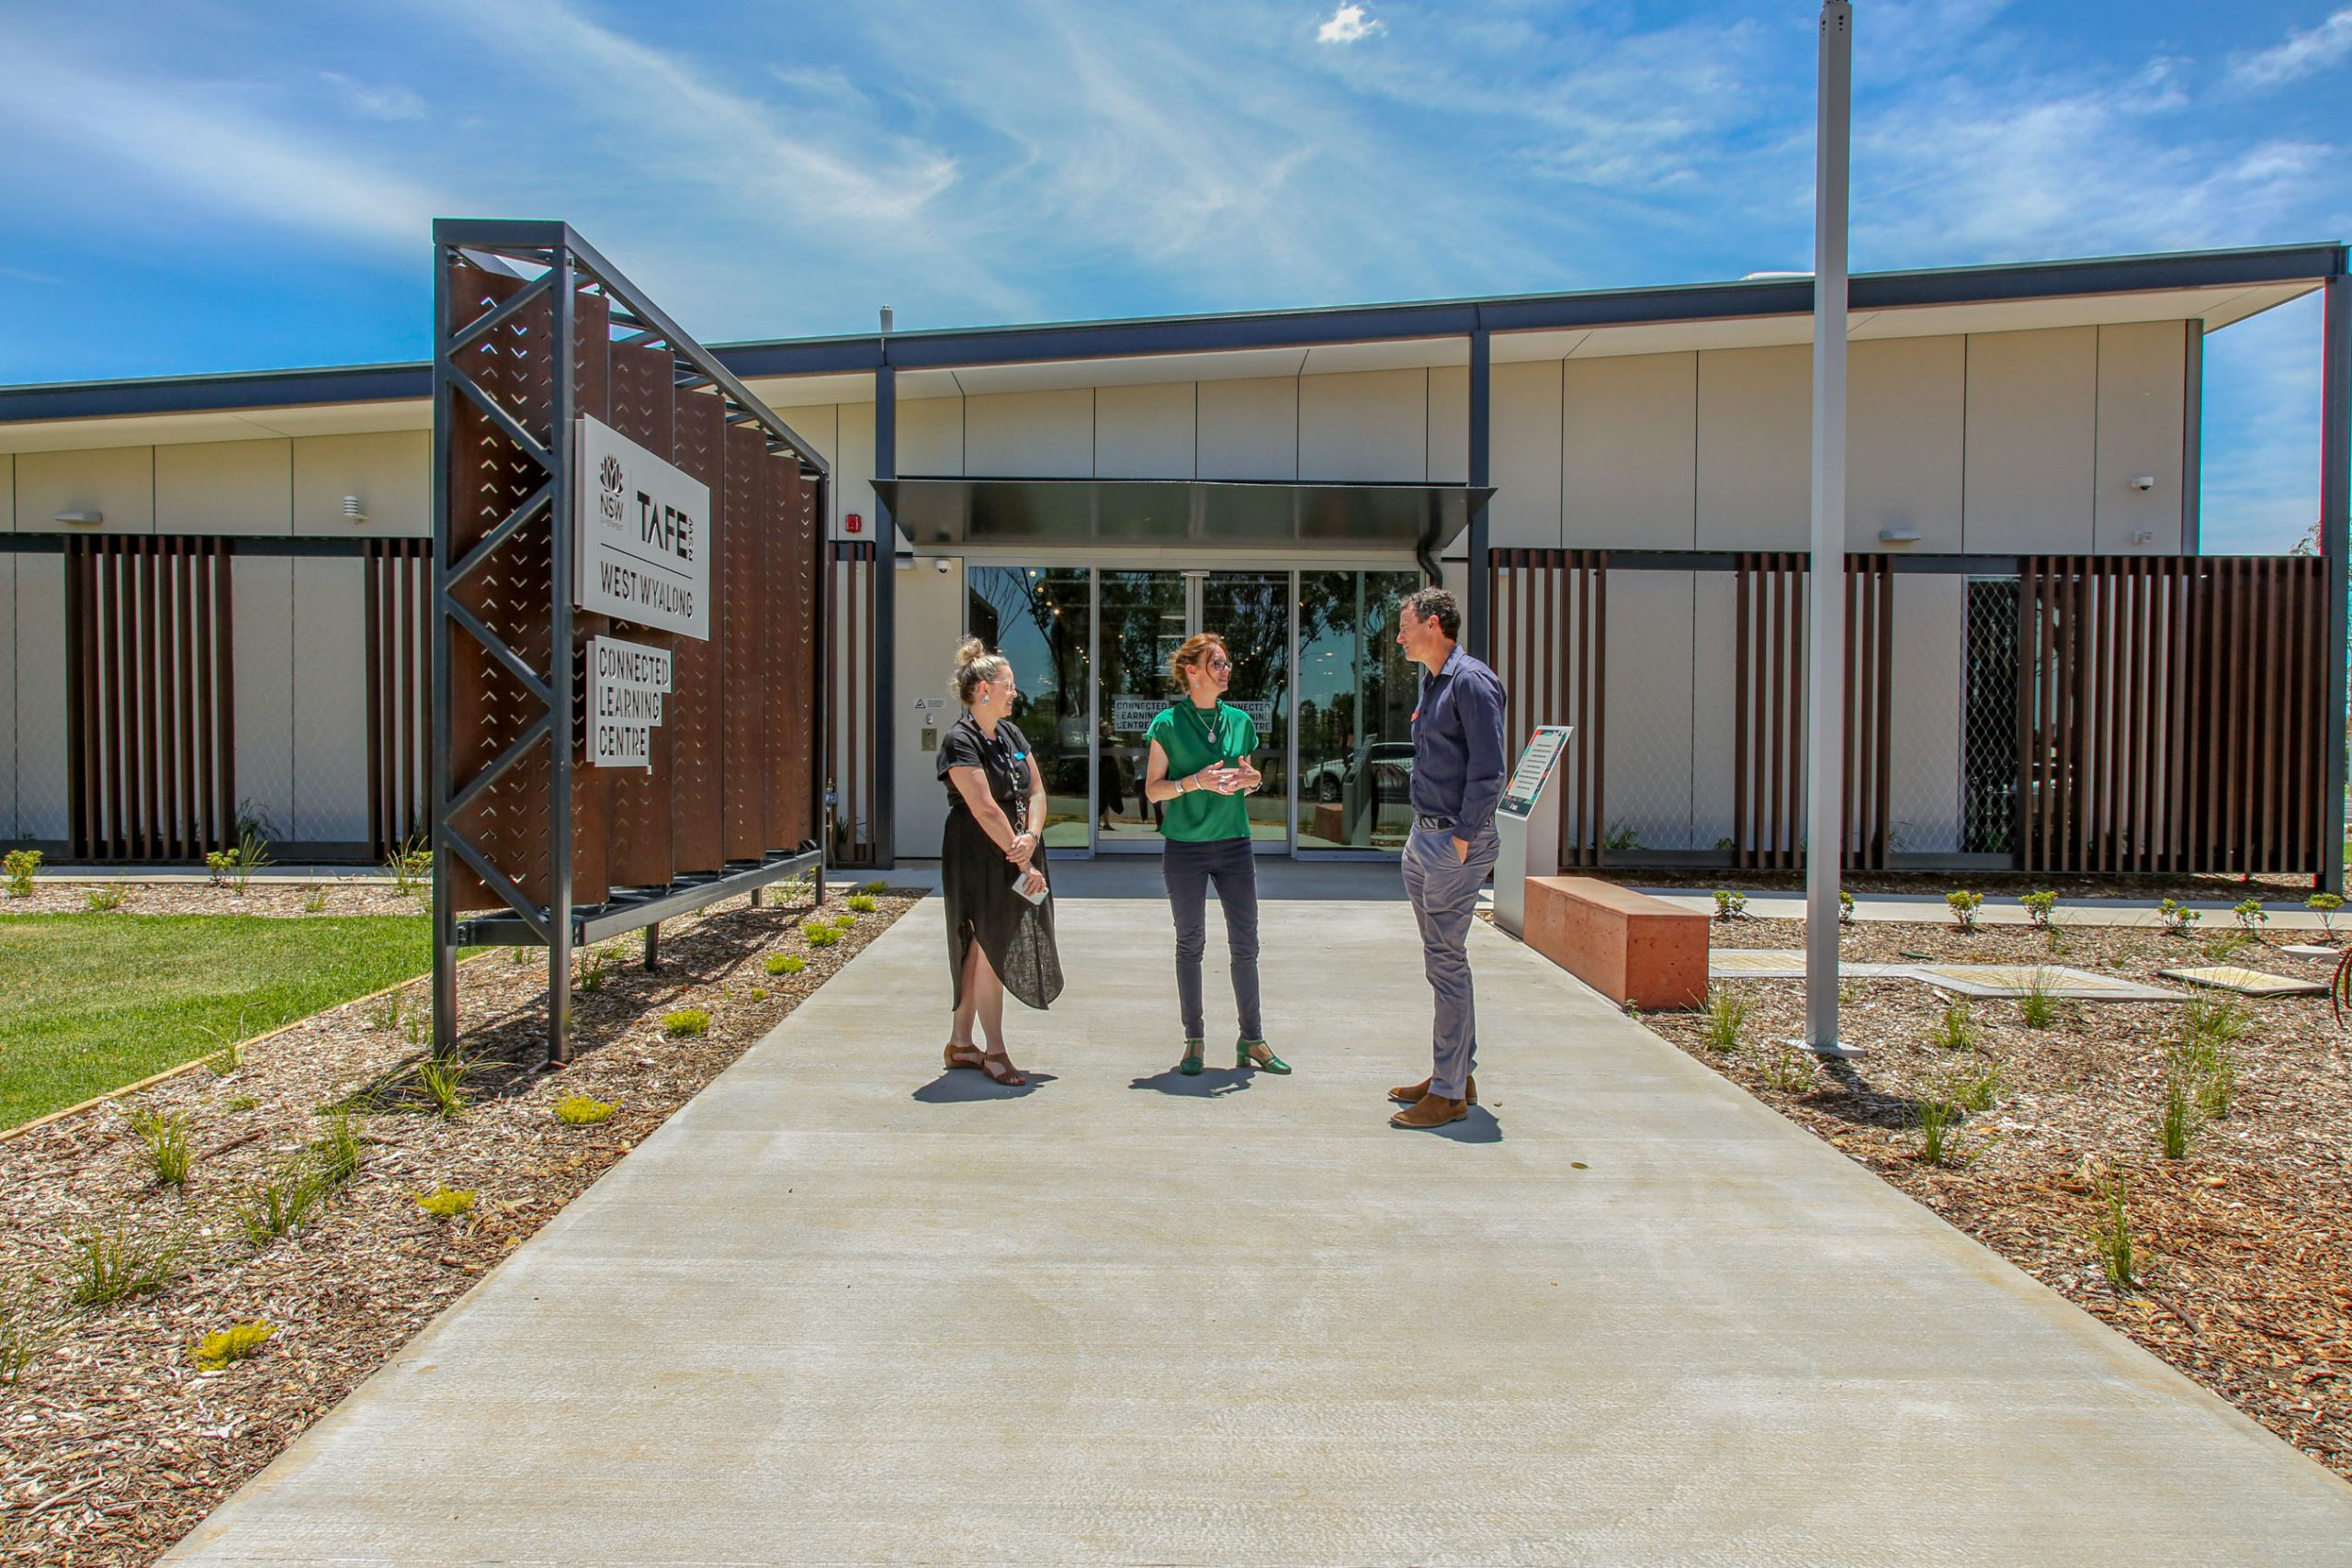 Kate Braunberger, Steph Cooke and Nathon Irvin stand in front of the new building.